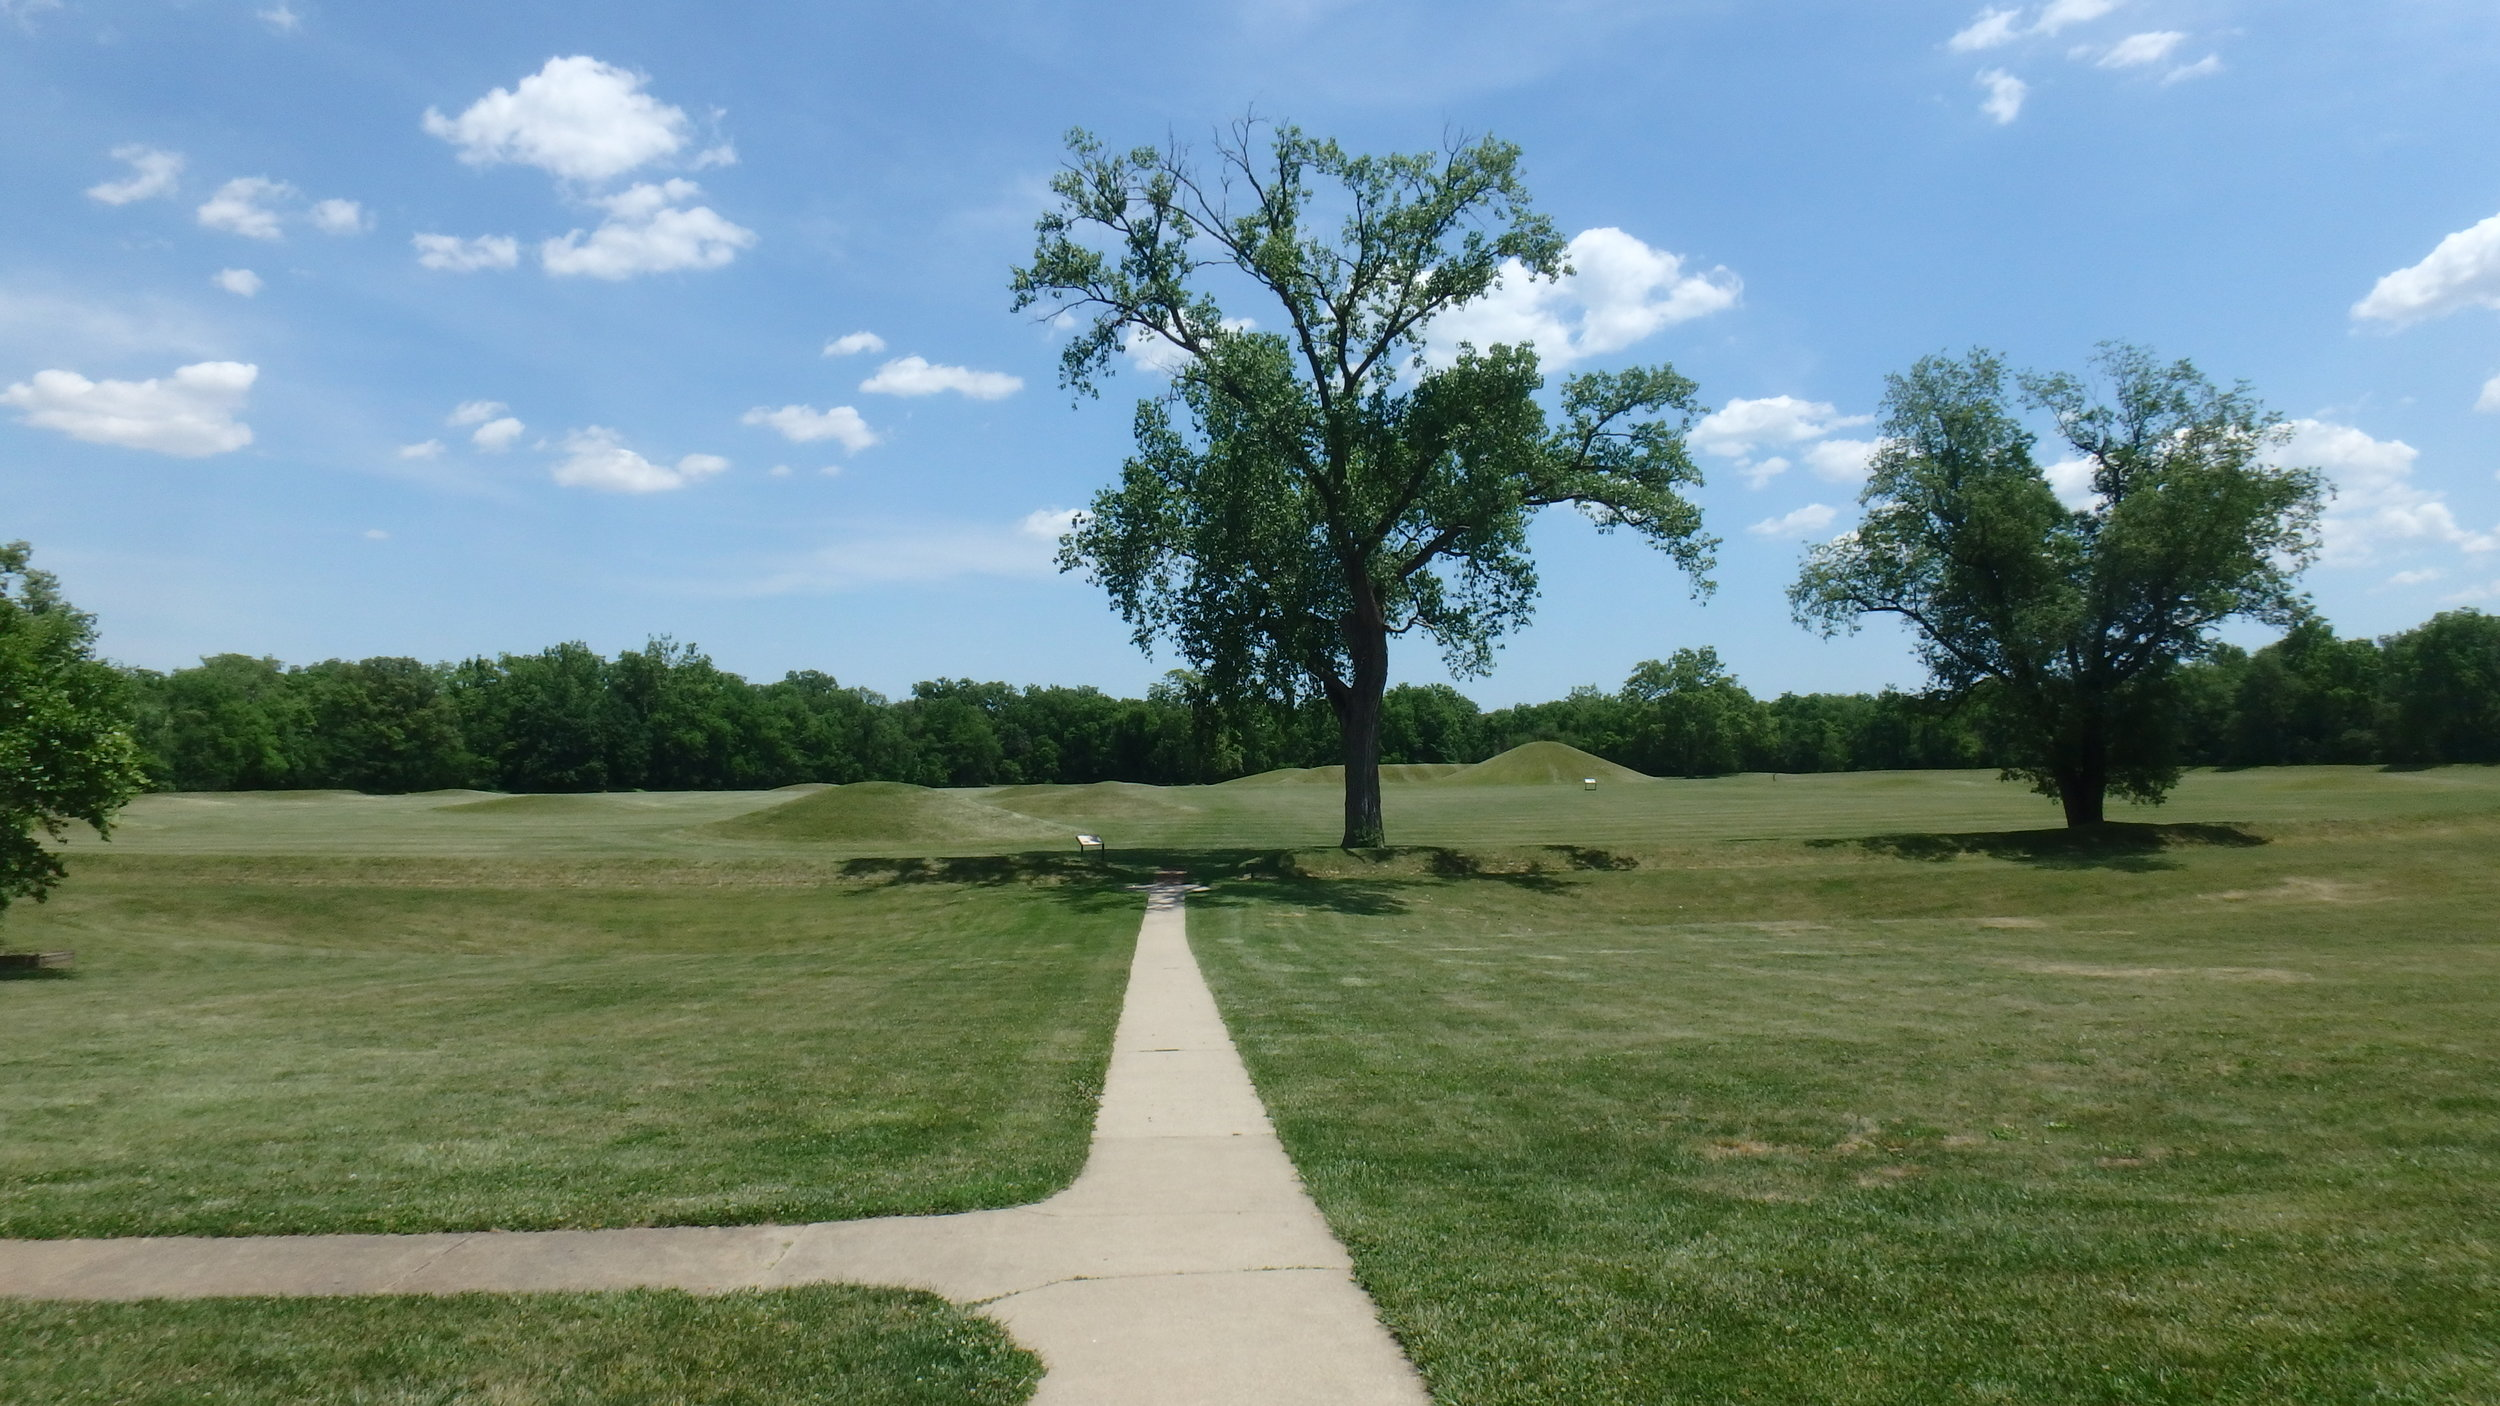 During World War I the Mound City Group site was occupied by a military training center known as Camp Sherman.